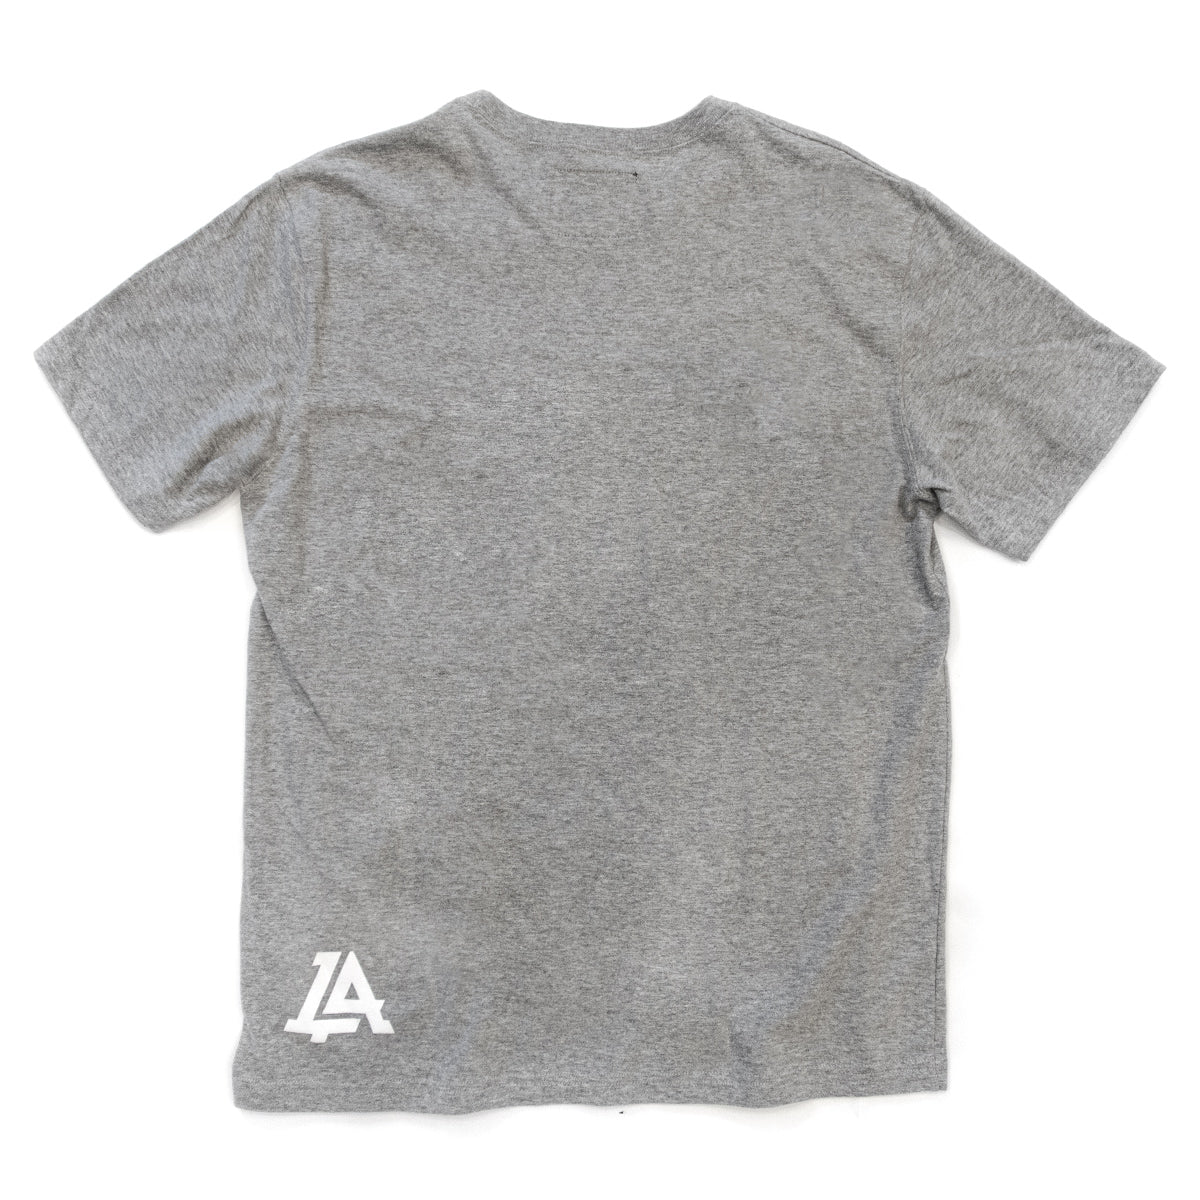 Lost Art Canada - white on grey basic logo tee back view